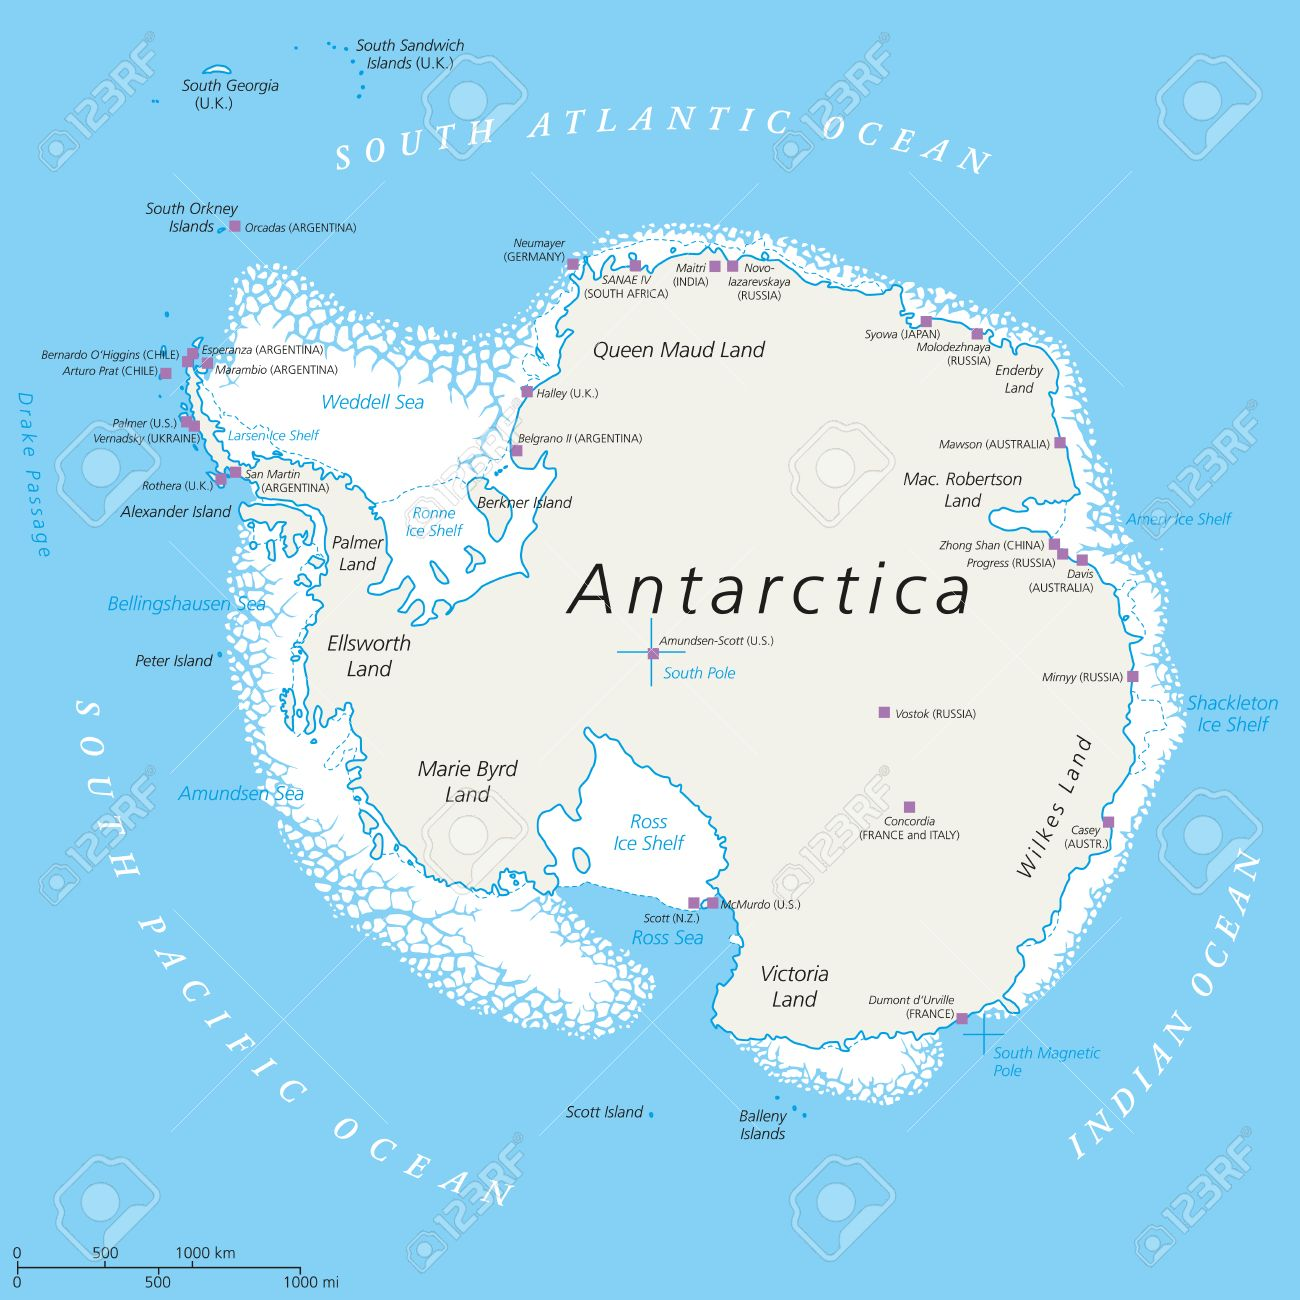 Antarctica Political Map With South Pole Scientific Research